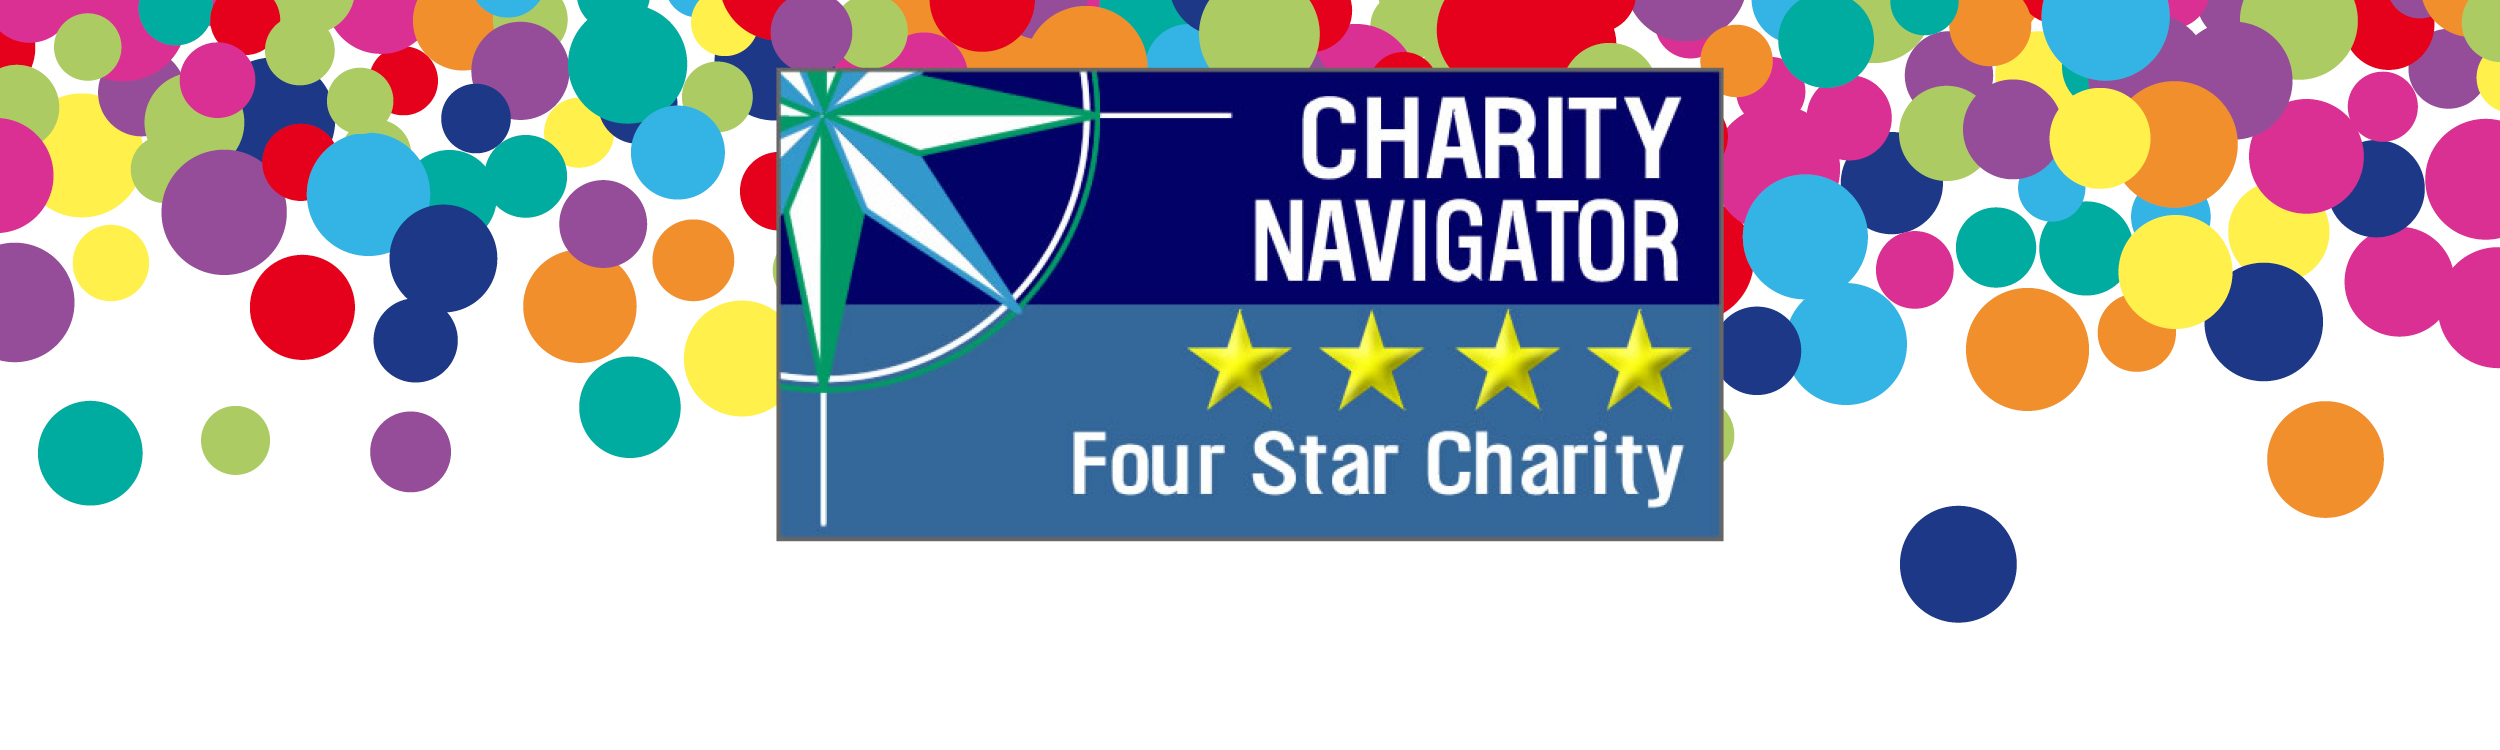 Charity Navigator to Senior Services: 4 Stars!